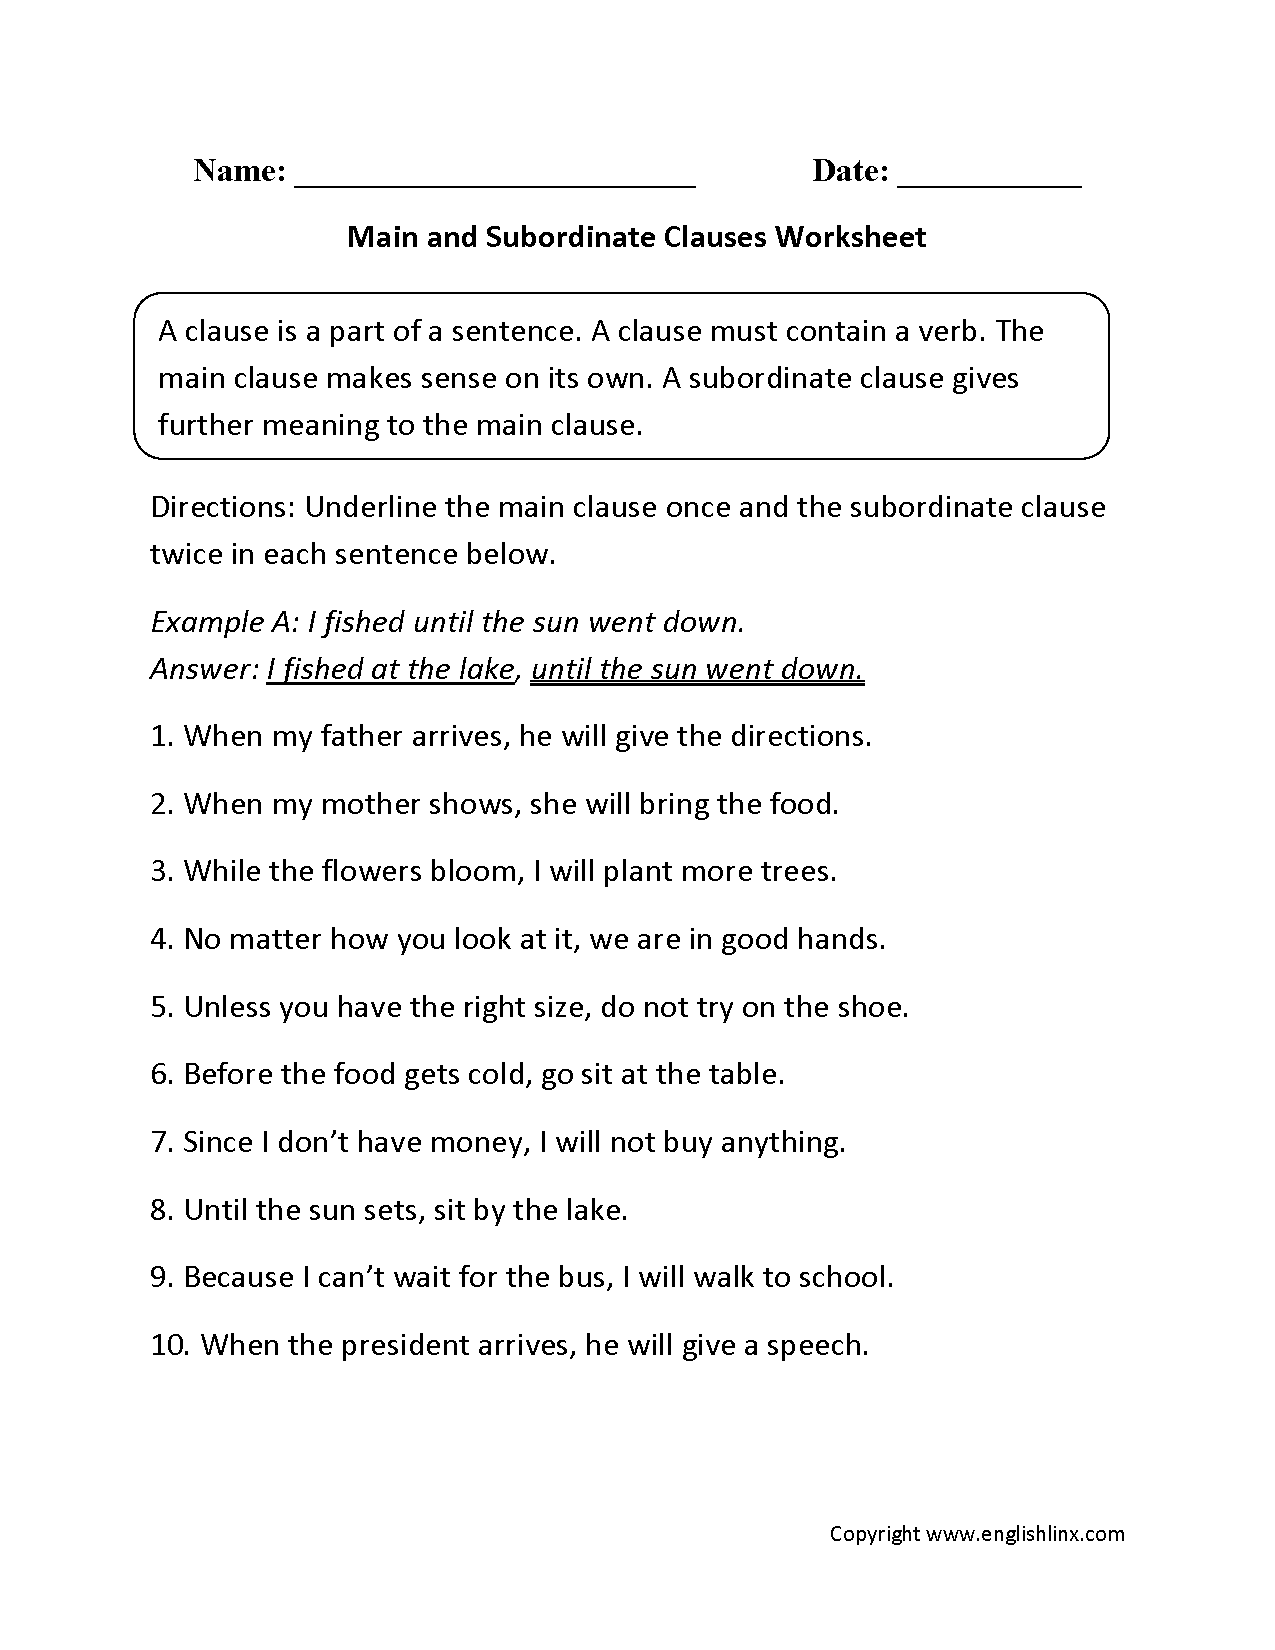 worksheet Subordinate Clause Worksheet clauses worksheets main and subordinate worksheet worksheet